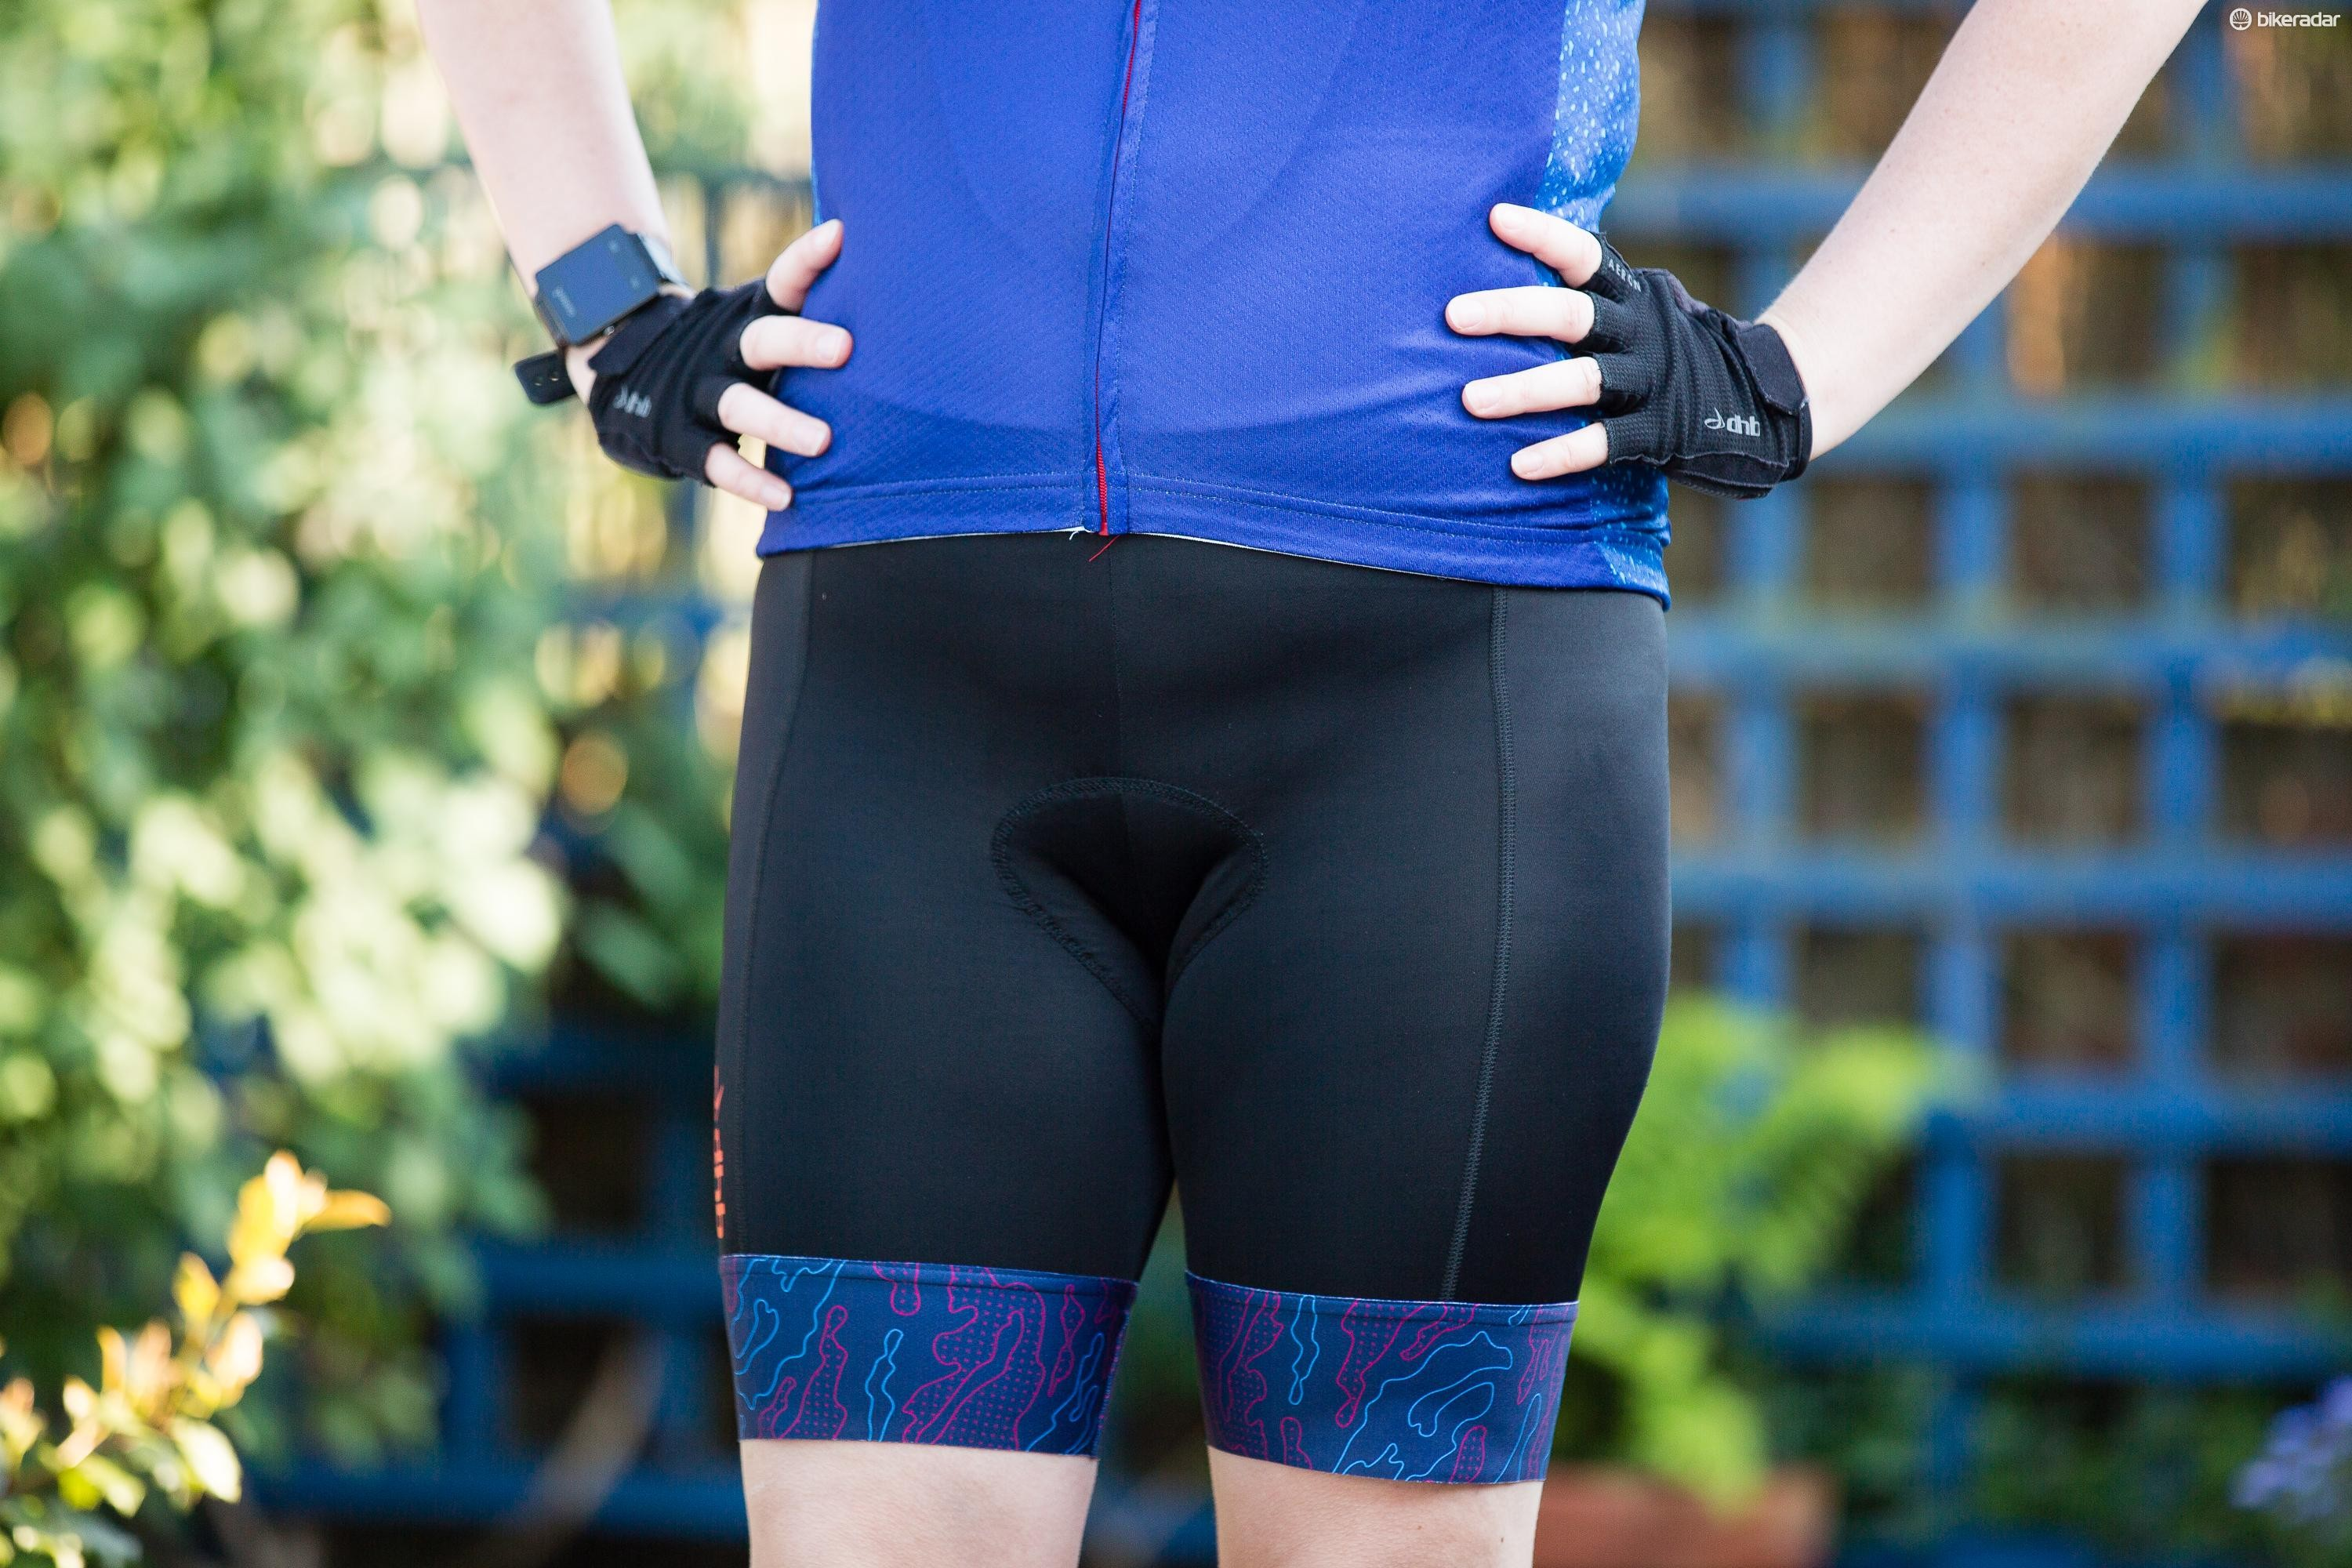 The main body of the shorts, excluding the straps, has UPF 50+ protection